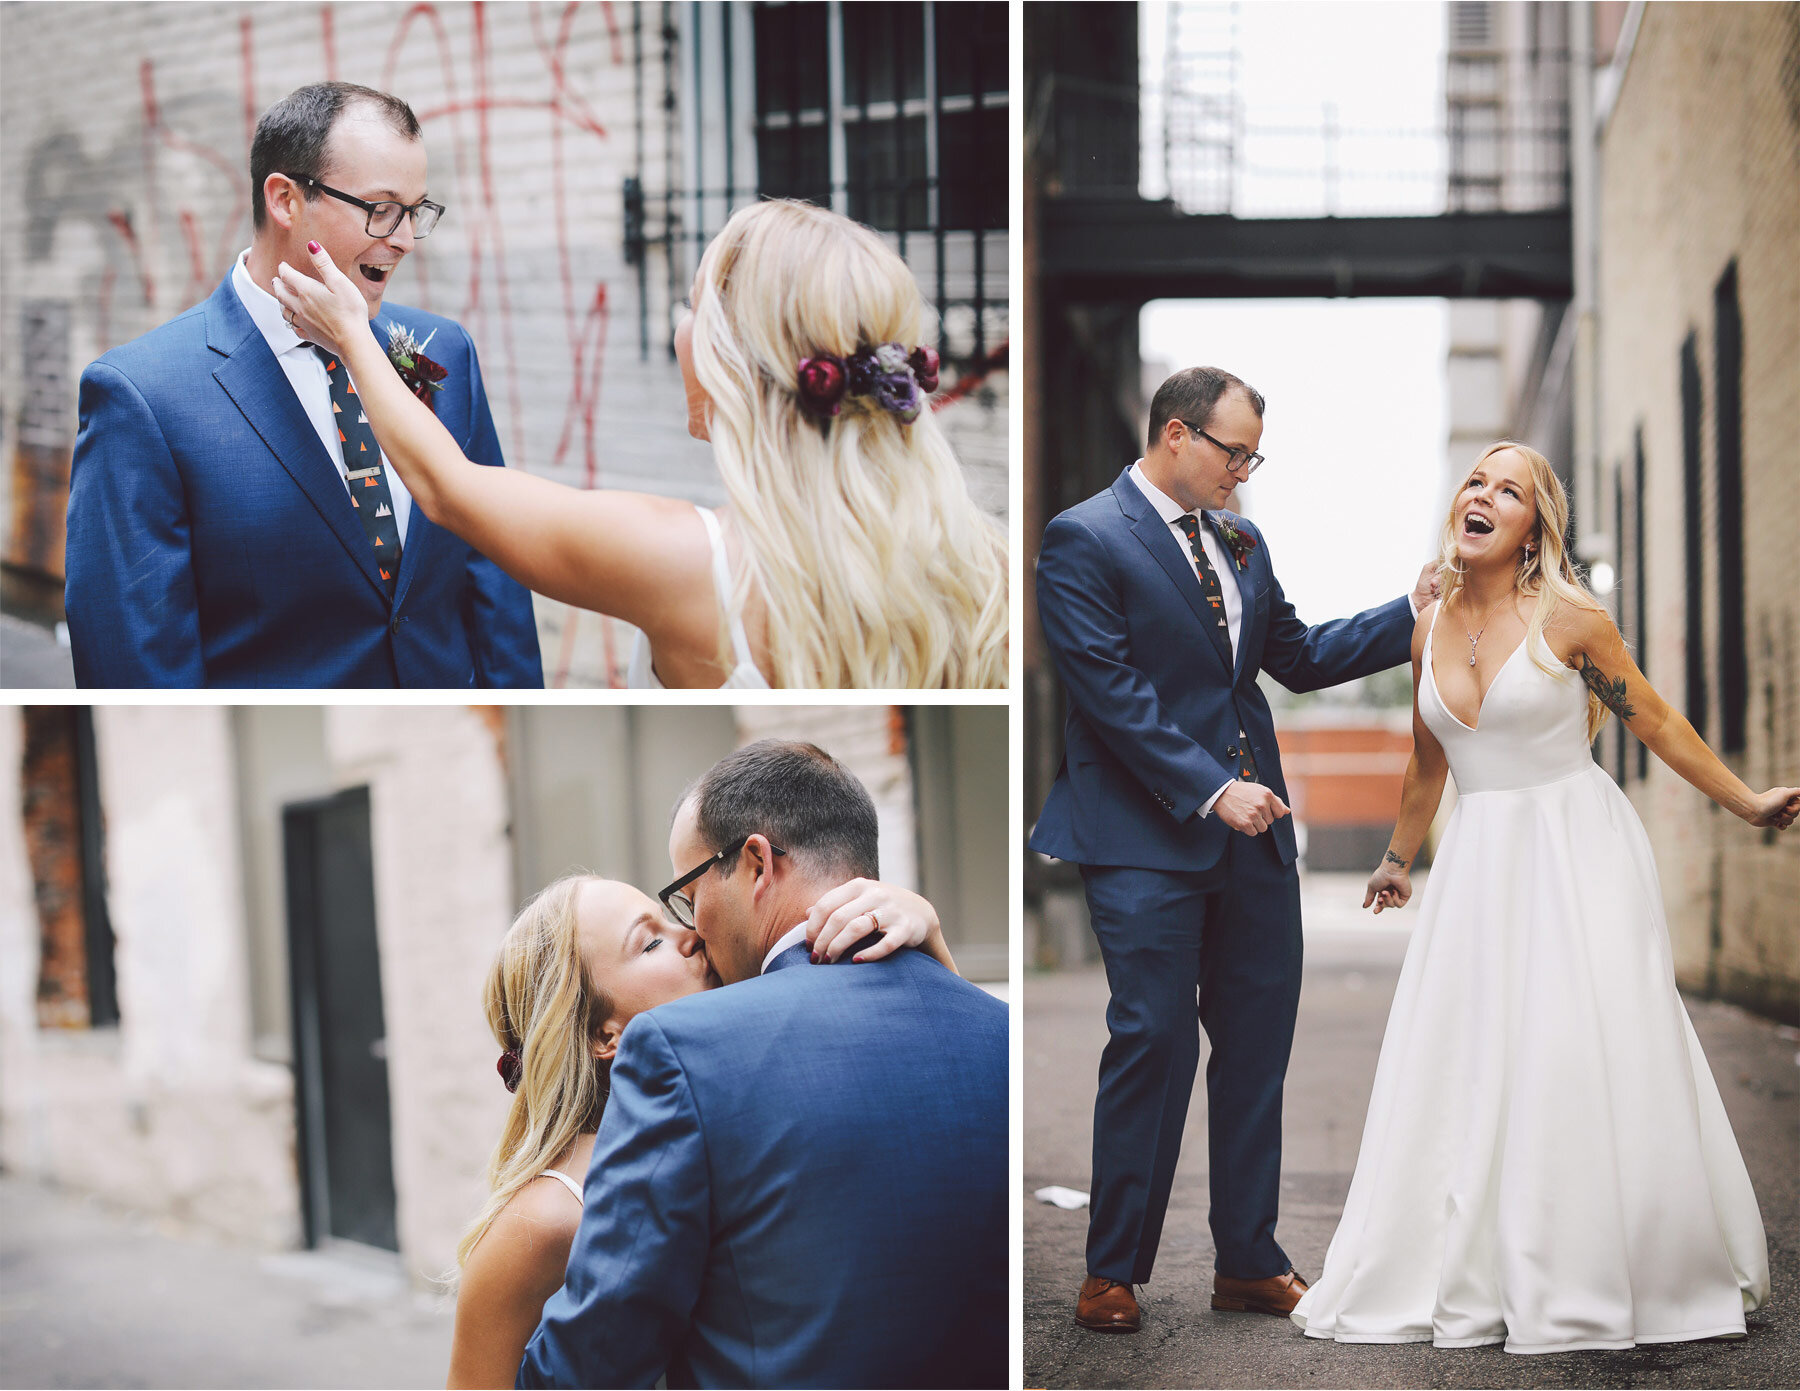 03-Vick-Photography-Wedding-Minneapolis-Minnesota-Downtown-Alley-Groom-First-Look-Danielle-and-Tom.jpg